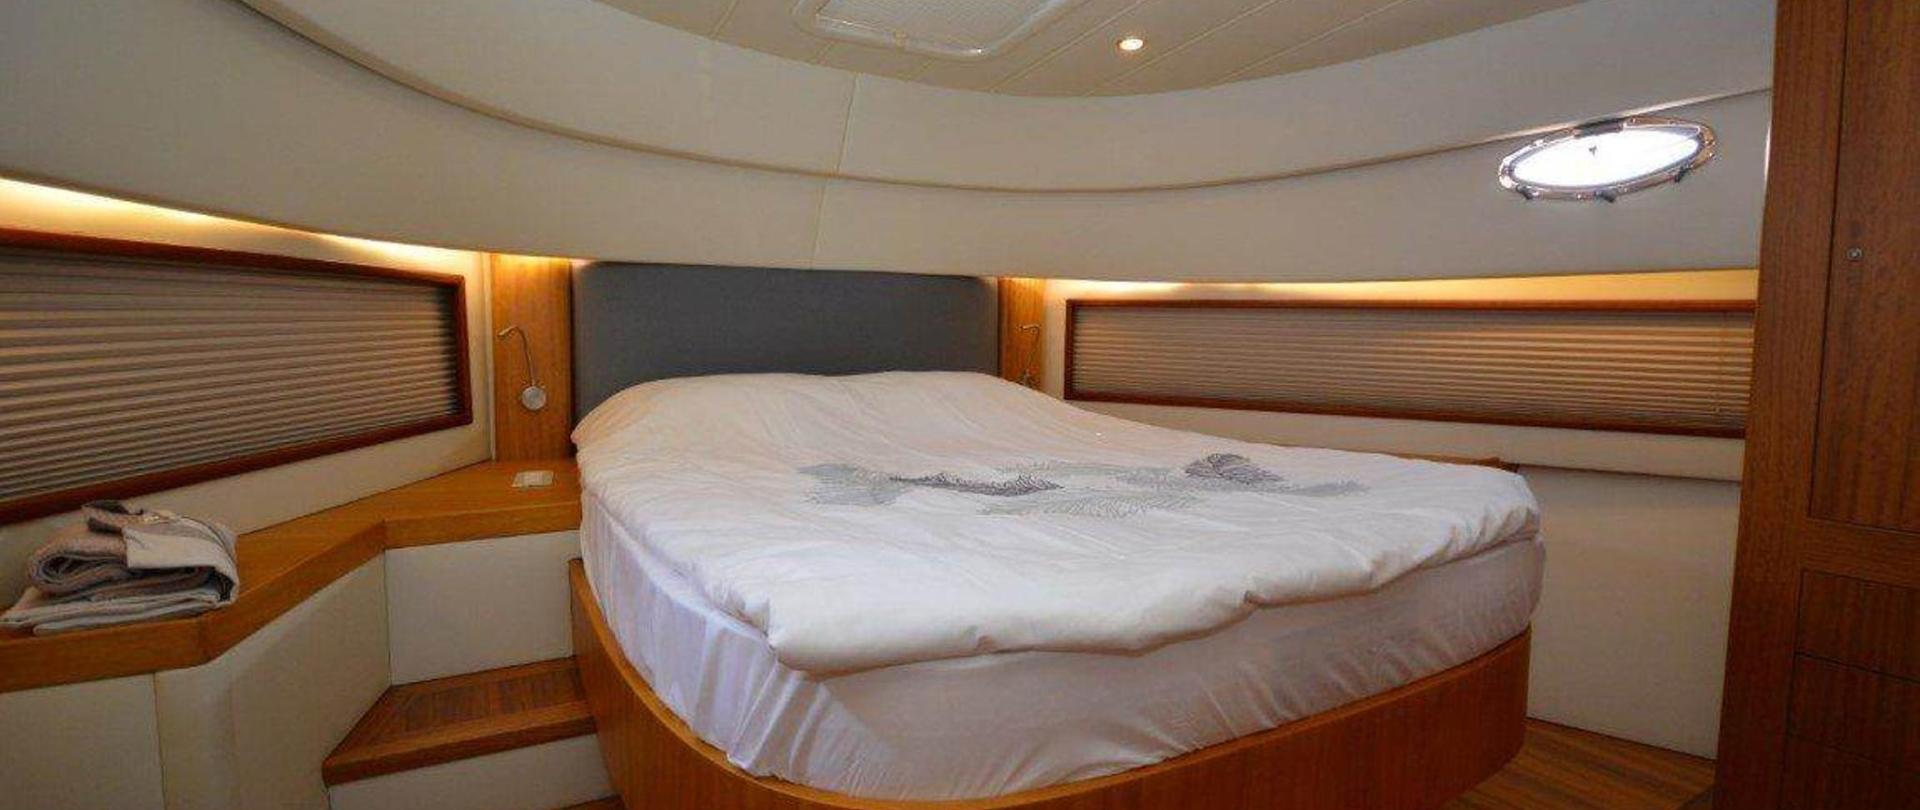 yacht-bedroom-3-2.jpg